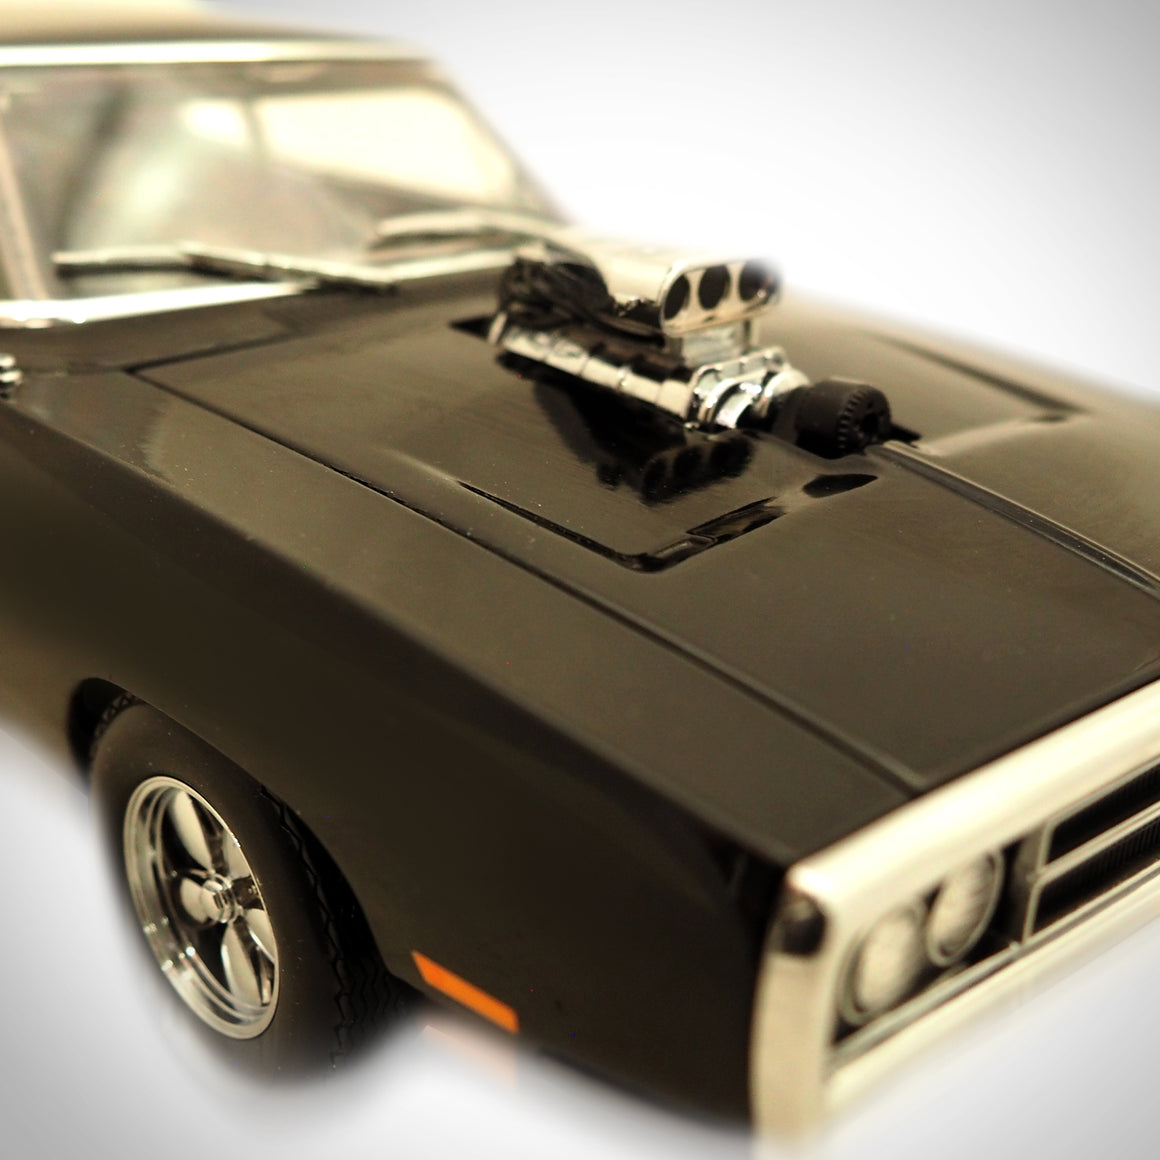 FAST & FURIOUS DOM'S 1970 DODGE CHARGER  1/24 Die Cast Car